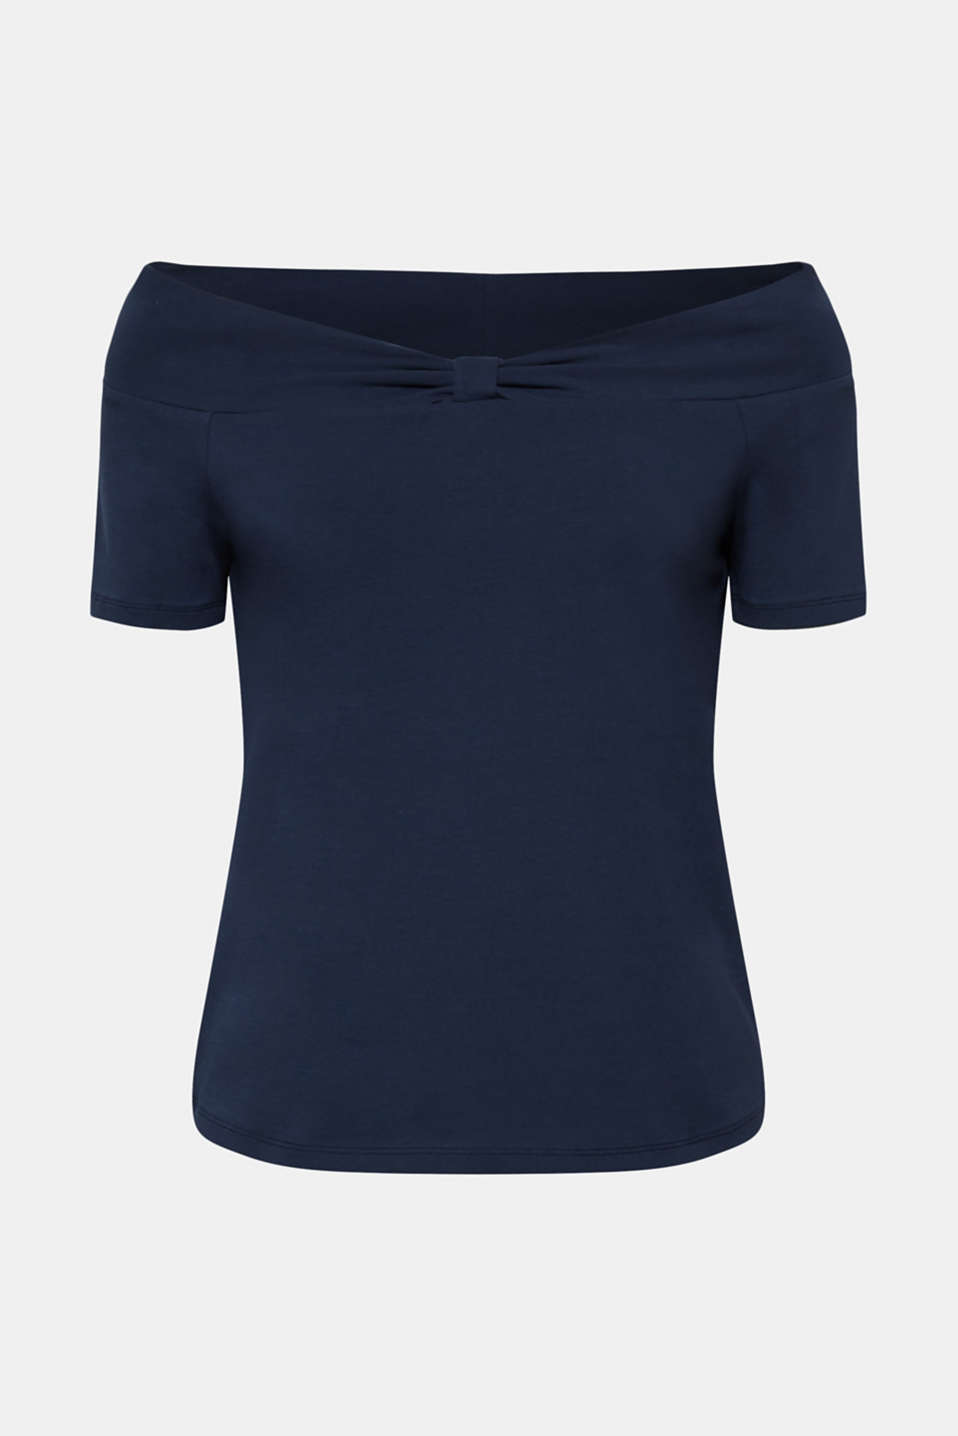 Stretch T-shirt with a Carmen neckline and bow detail, NAVY, detail image number 6